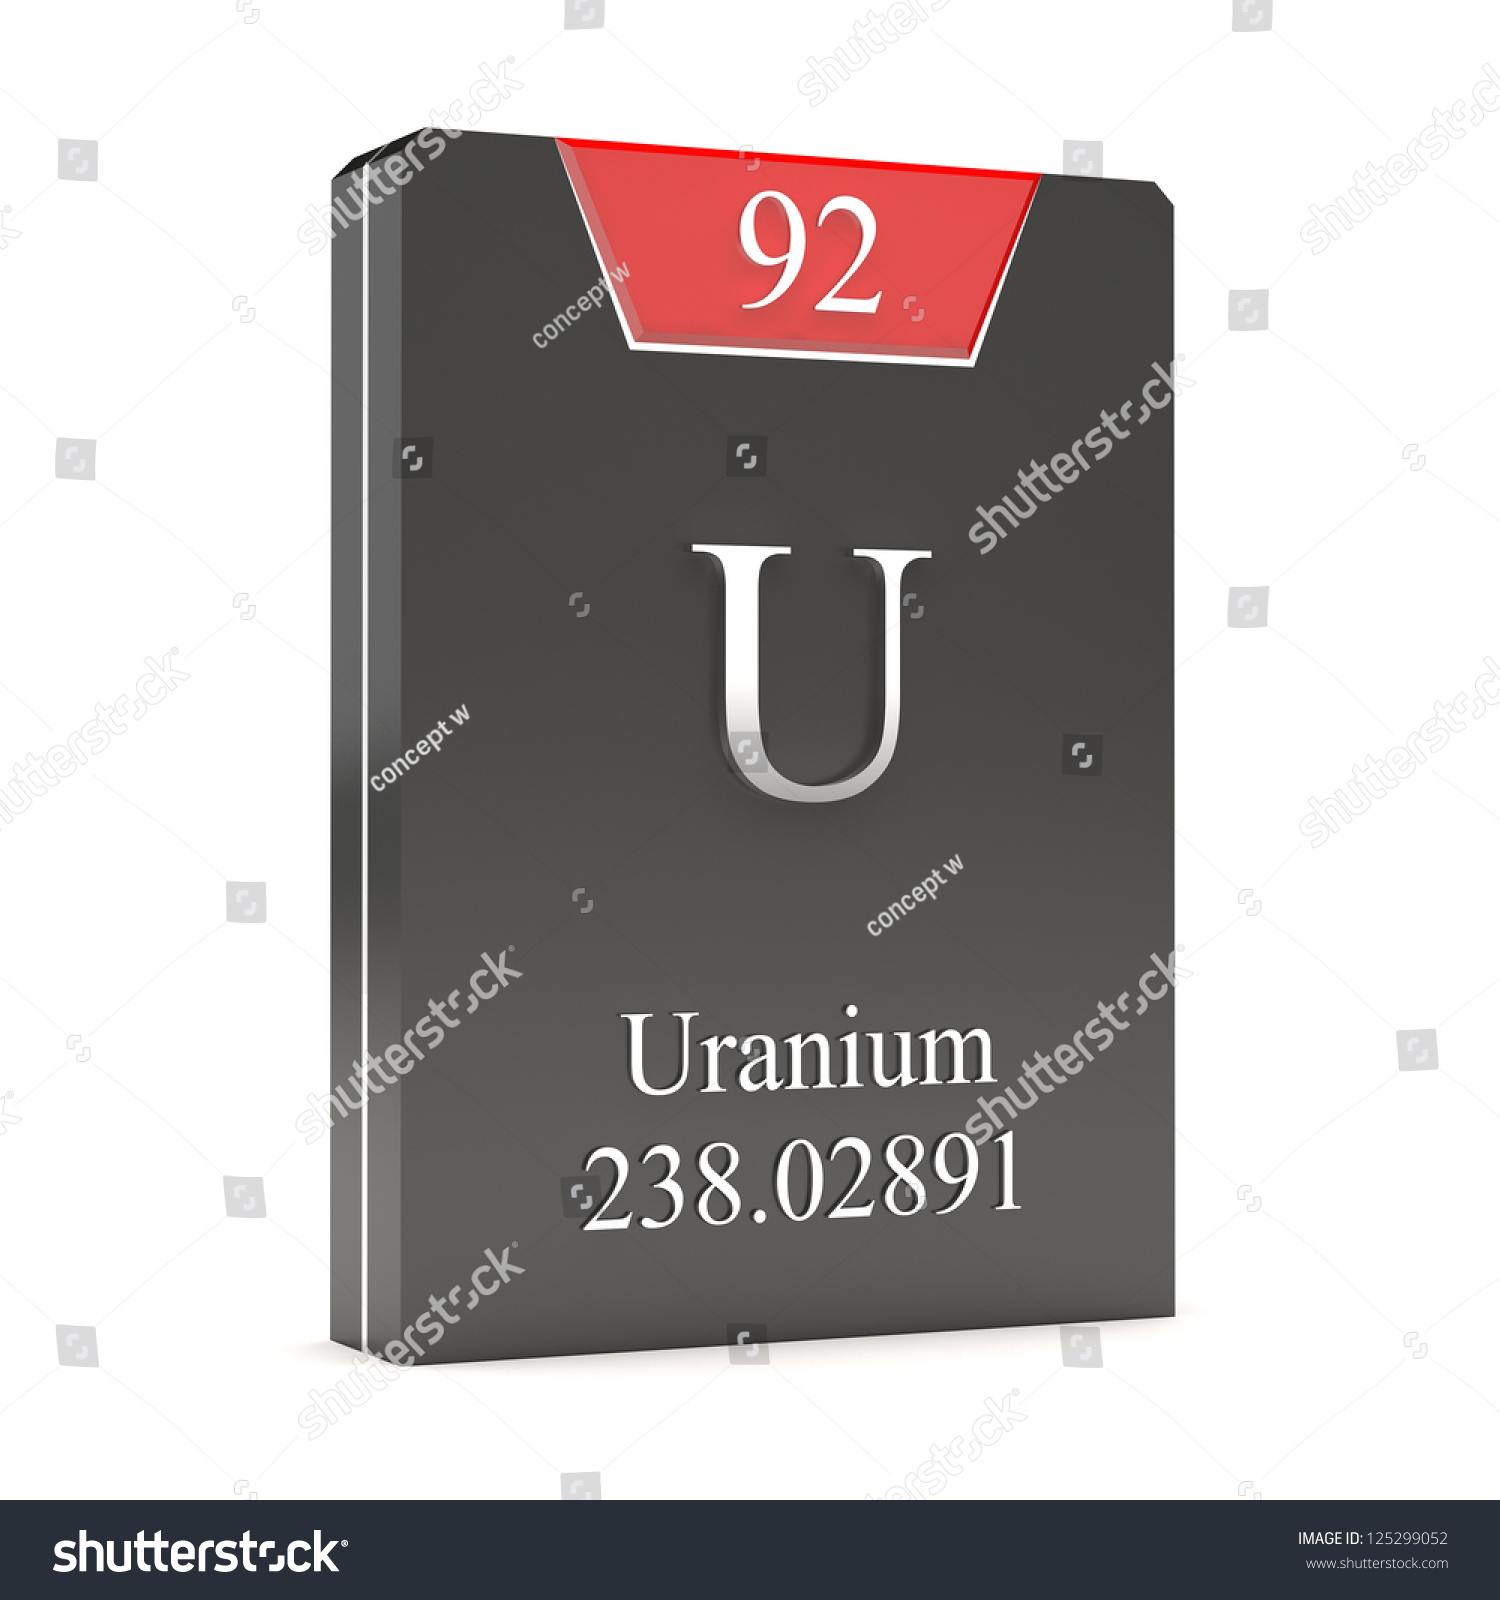 Periodic table 92 images periodic table images uranium u 92 periodic table stock illustration 125299052 uranium u 92 from periodic table gamestrikefo images gamestrikefo Image collections